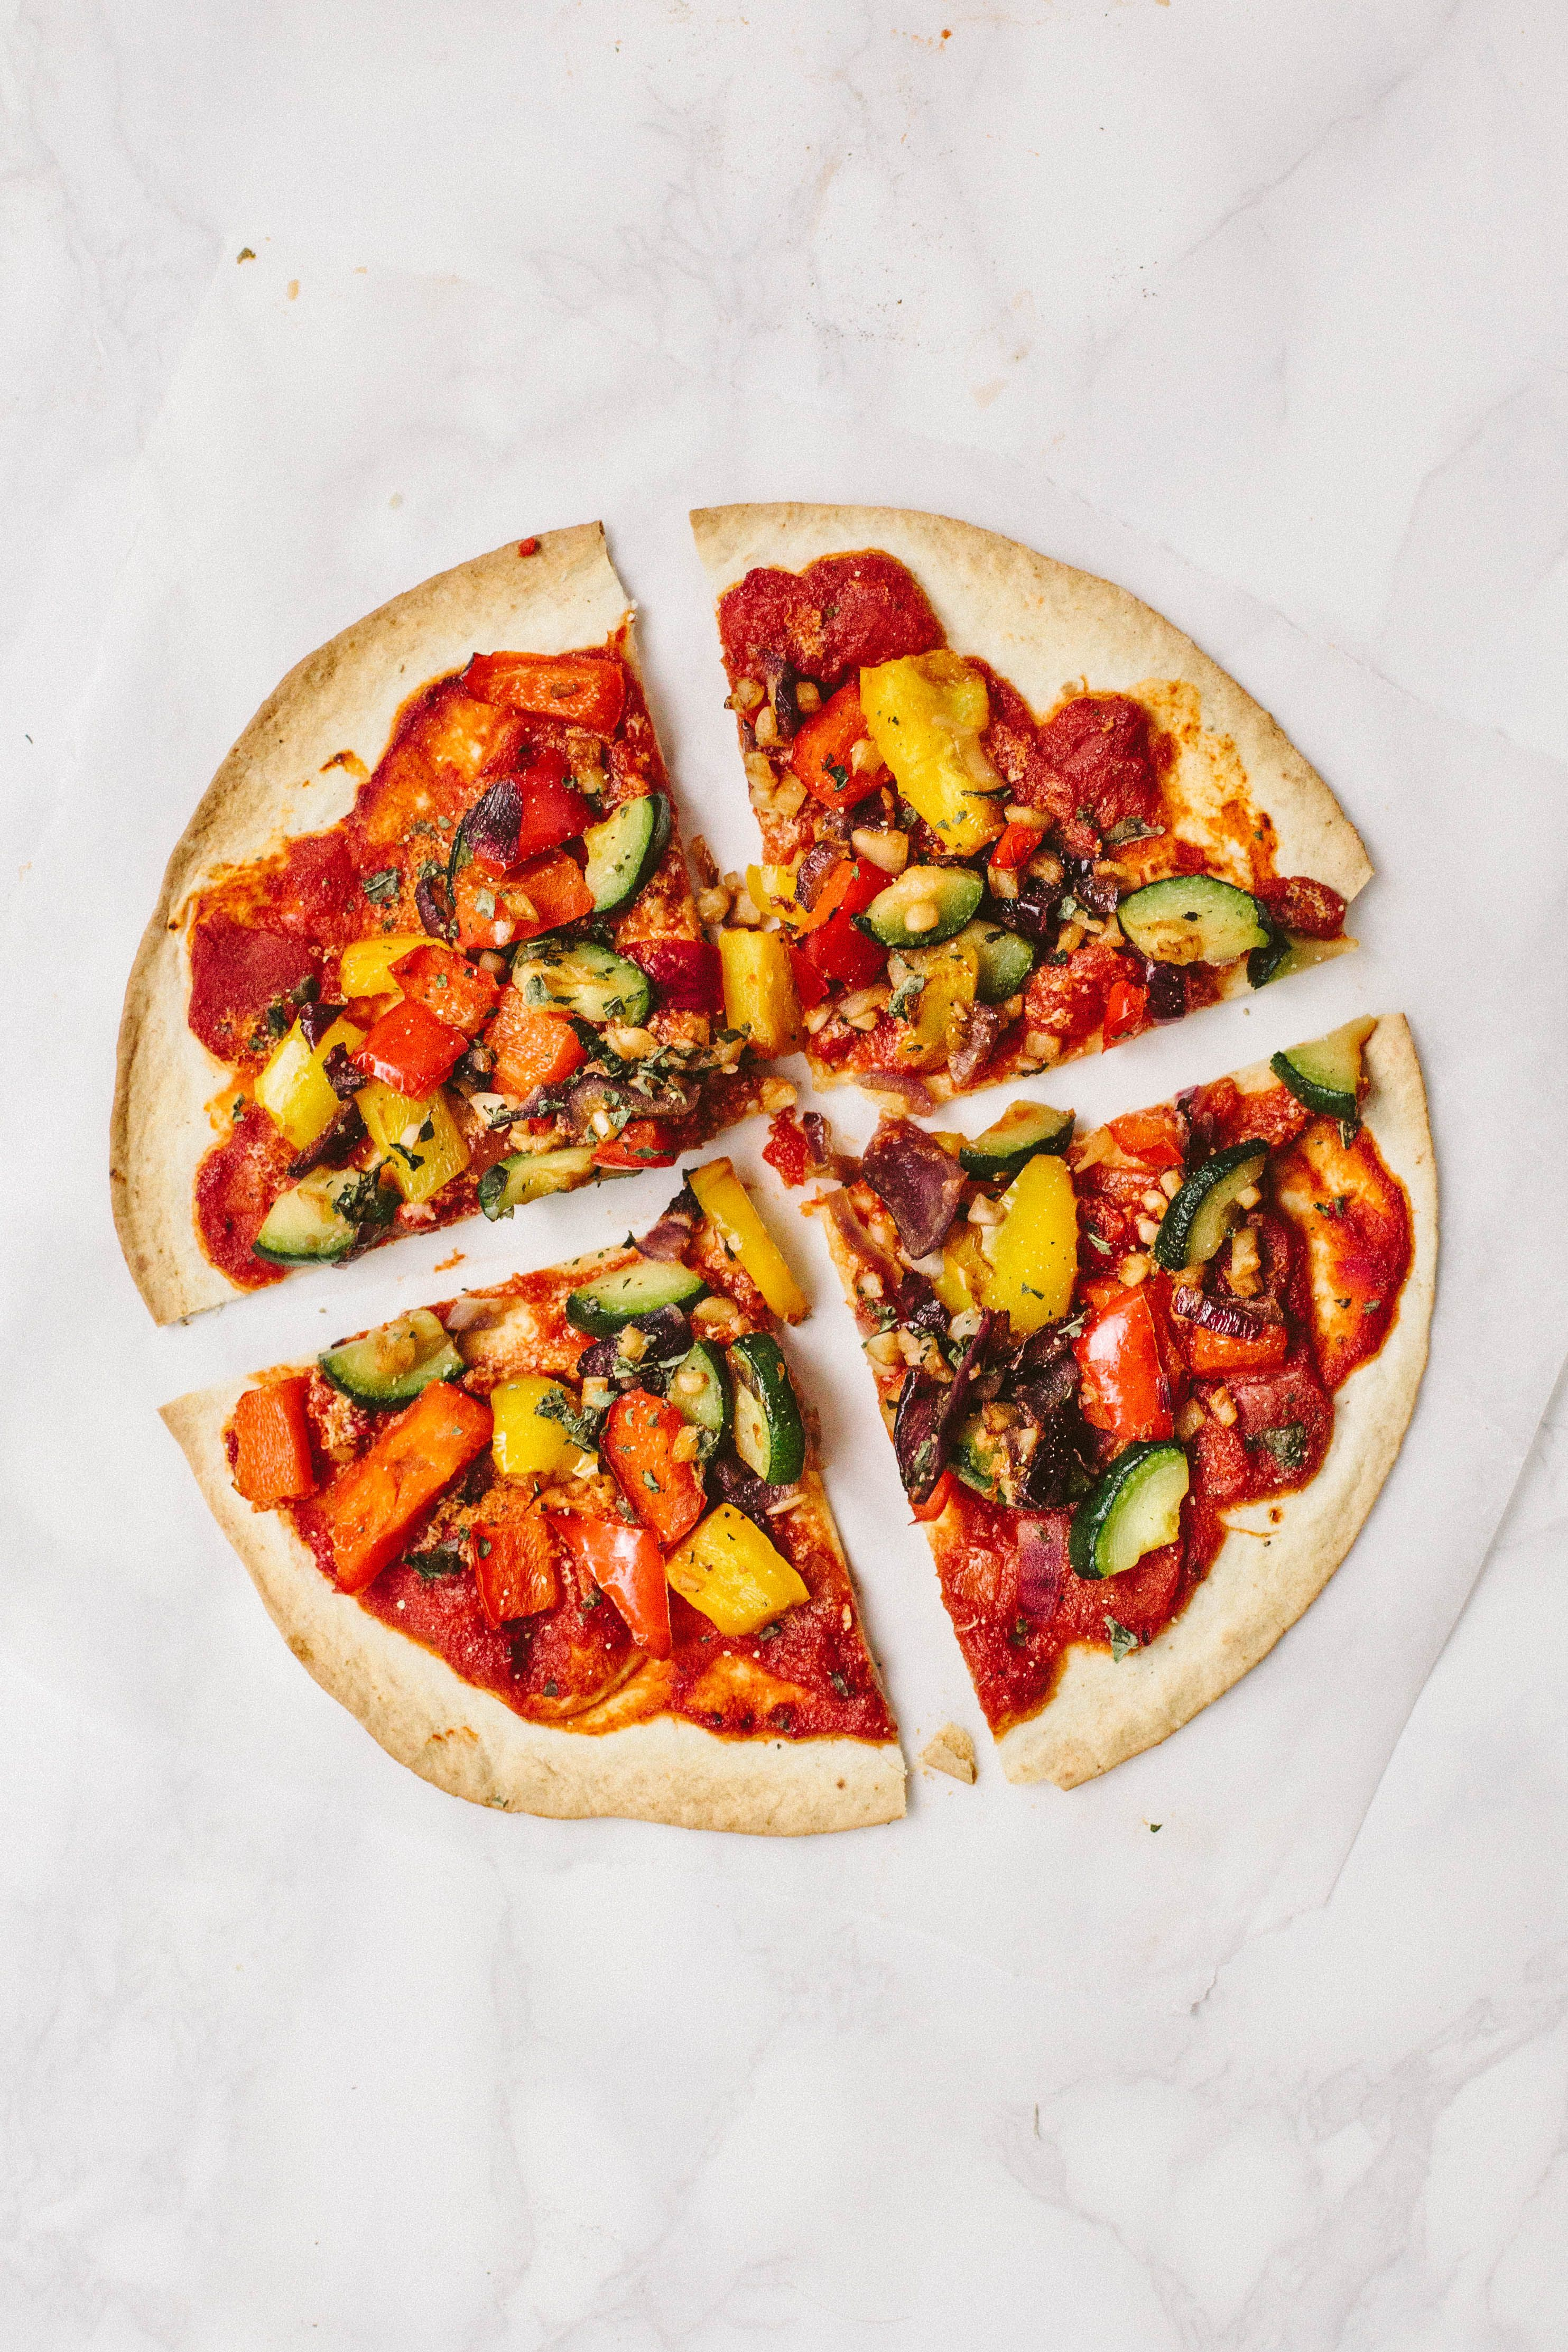 What If I Told You This Delicious Flavourful Spicy Cheezy Crispy Based Pizza Was Only 180 Calorie Vegetable Pizza Recipes Vegan Tortilla Vegetarian Recipes